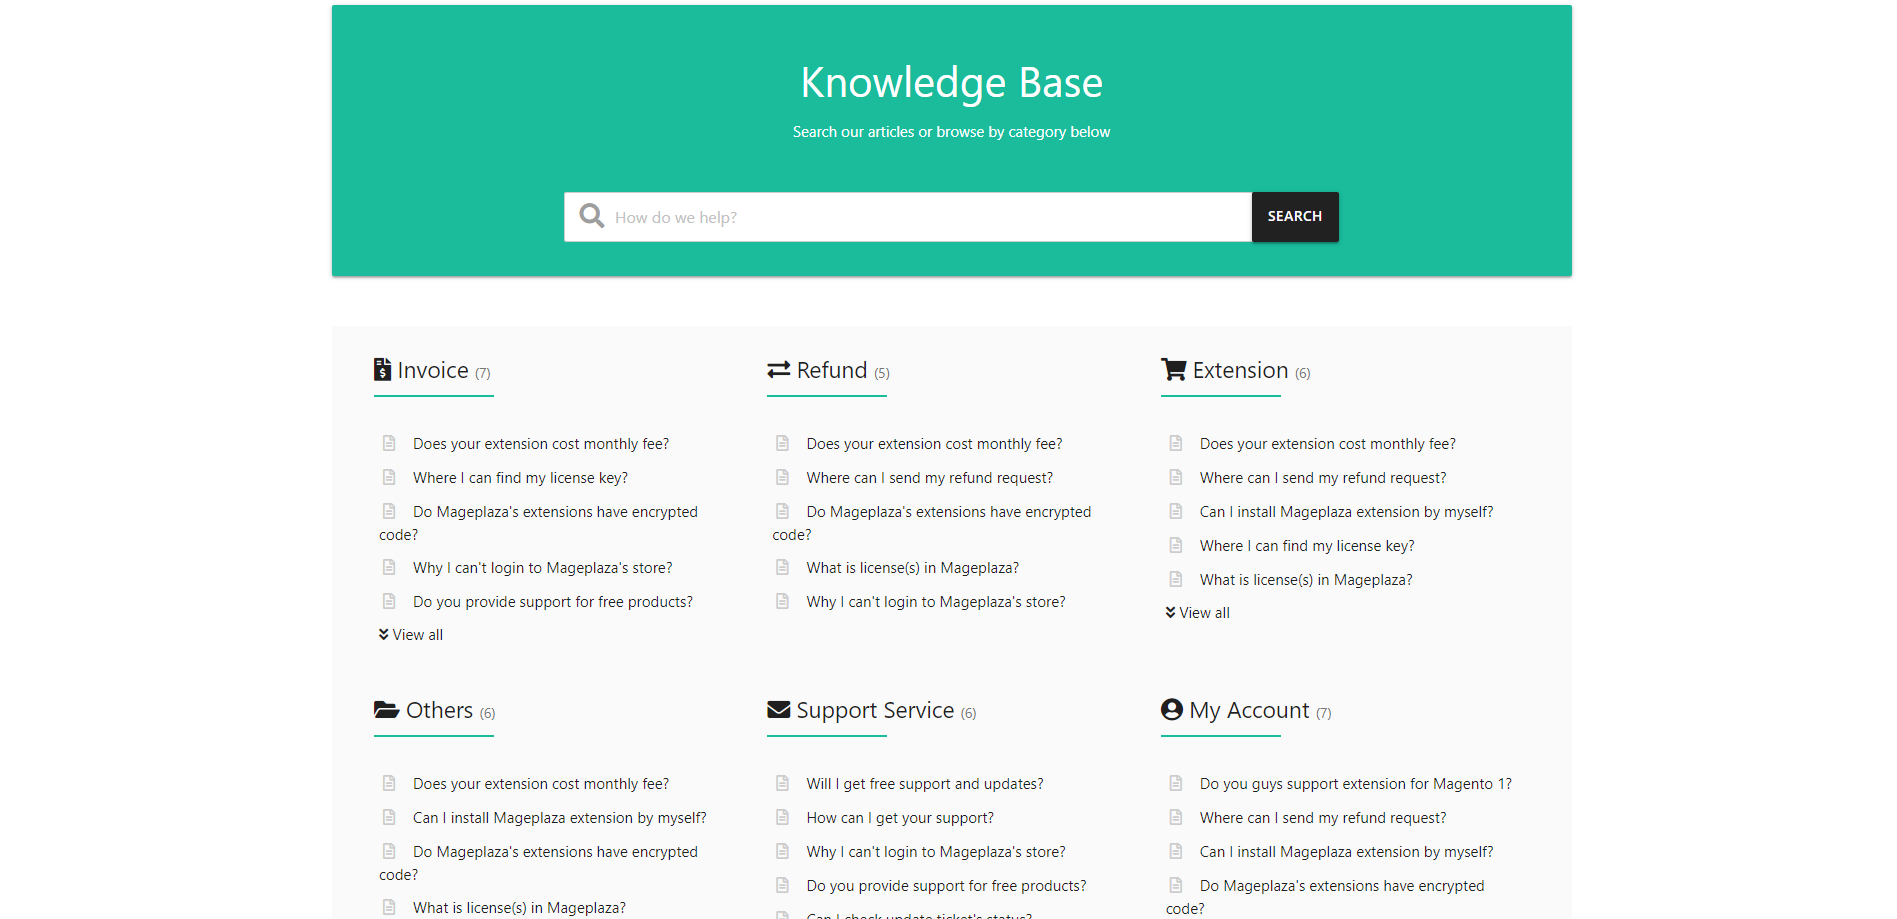 Layout of the Knowledge Base page